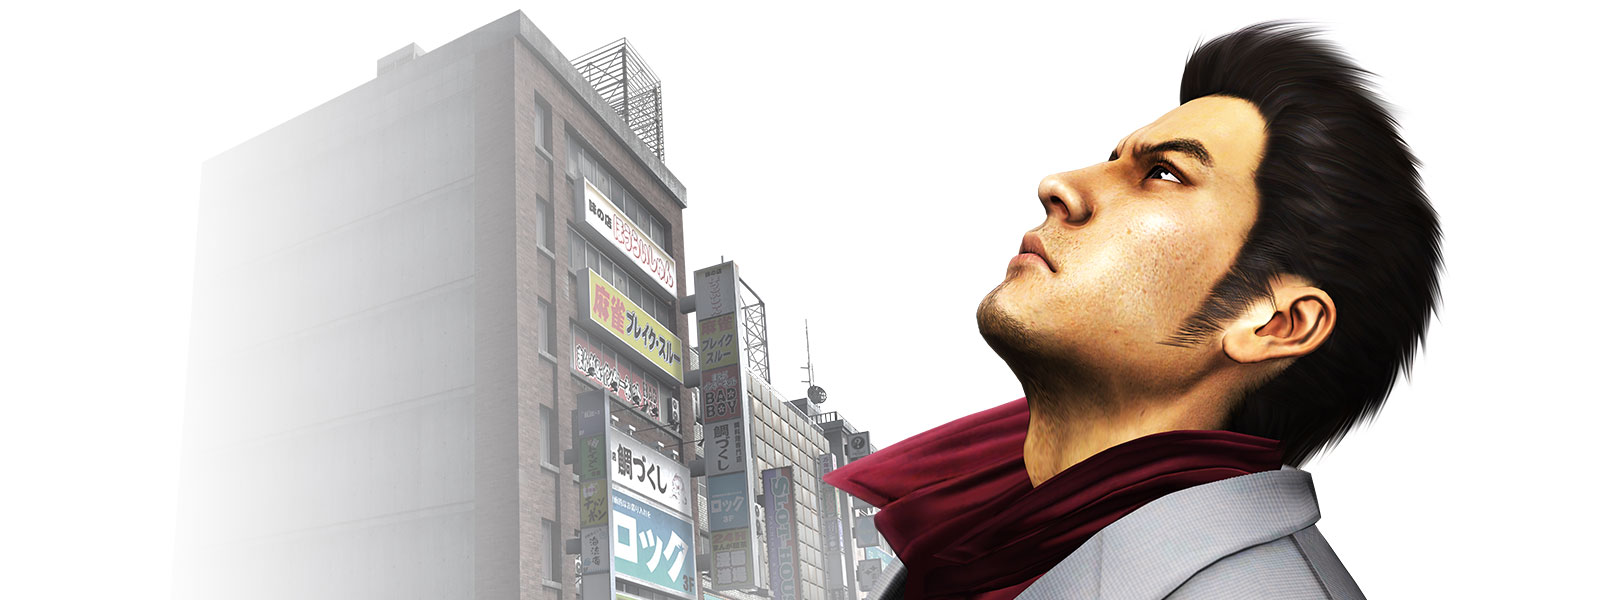 Kazuma Kiryu looking up at the sky over a city backdrop